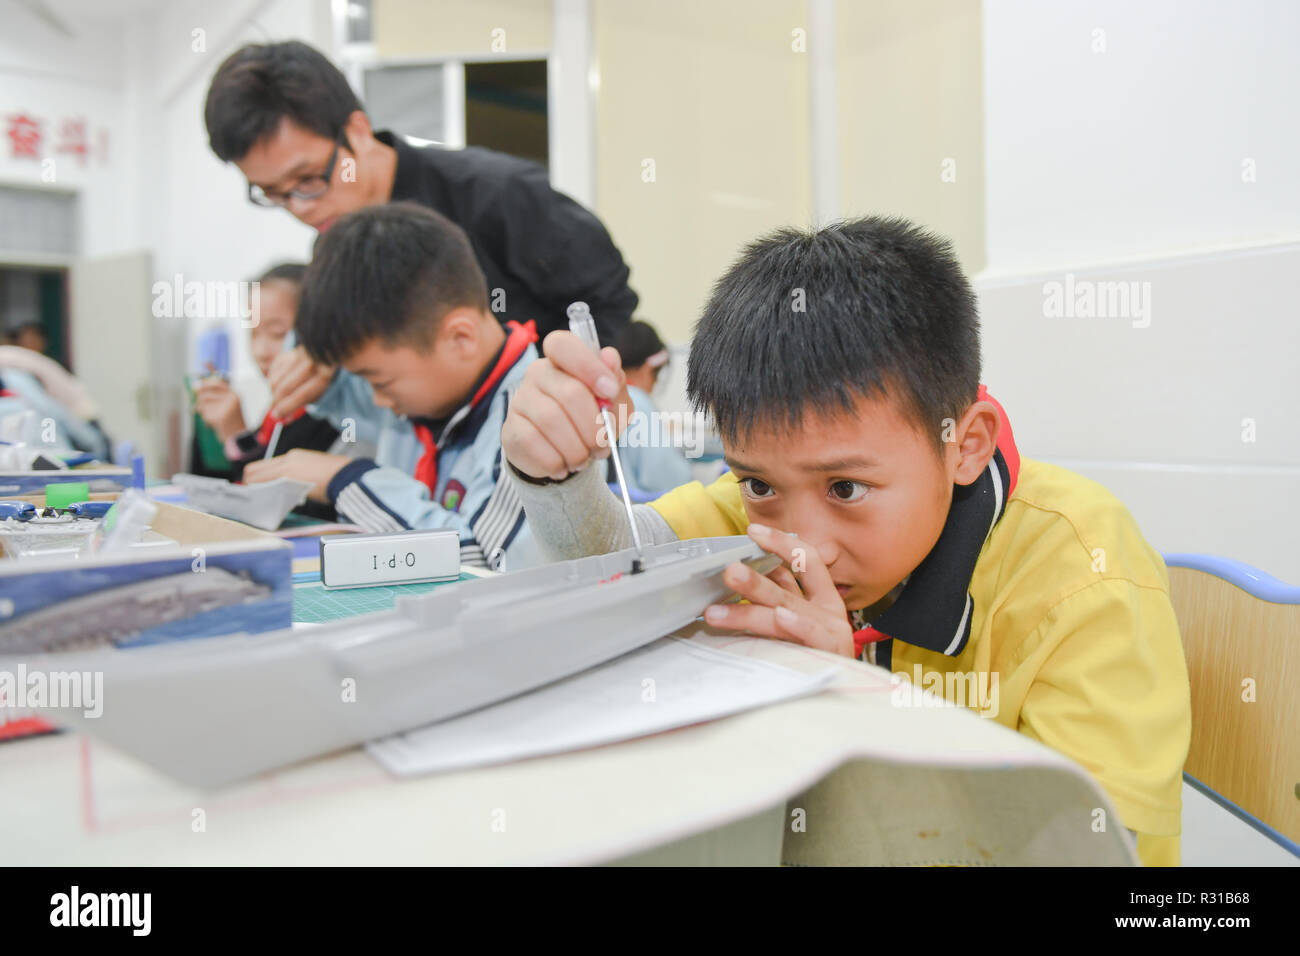 Shishi, China's Fujian Province. 20th Nov, 2018. Students attend aeromodelling after-school class at Jinfeng experimental school at Shishi City, southeast China's Fujian Province, Nov. 20, 2018. More than 40 schools provide extracurricular training for students whose parents are still at work when school is over in Shishi. Credit: Song Weiwei/Xinhua/Alamy Live News - Stock Image